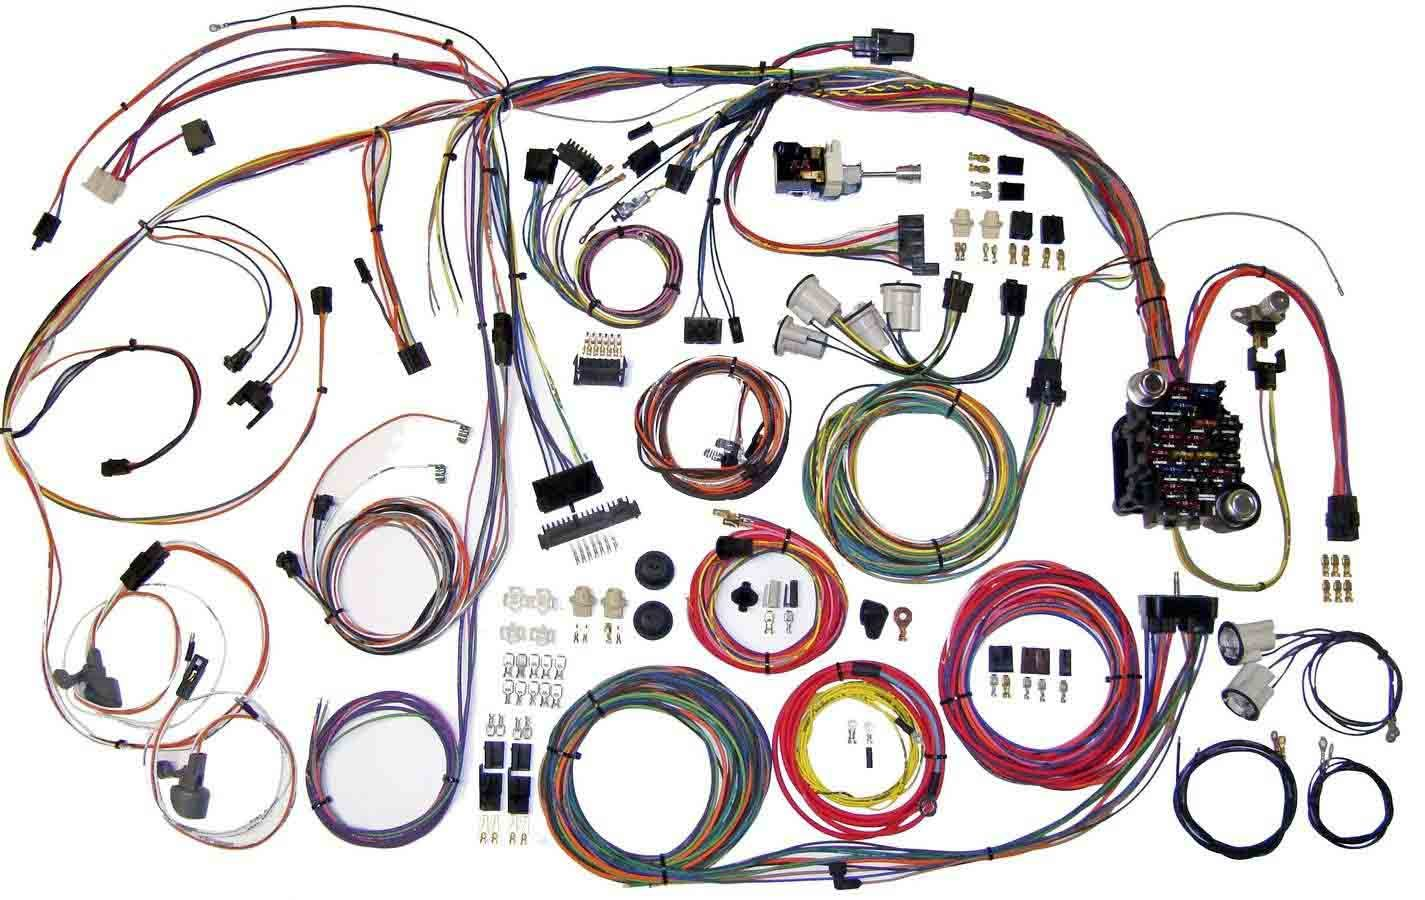 American Autowire 510105 Car Wiring Harness, Classic Update, Complete, GM A-Body 1970-72, Kit